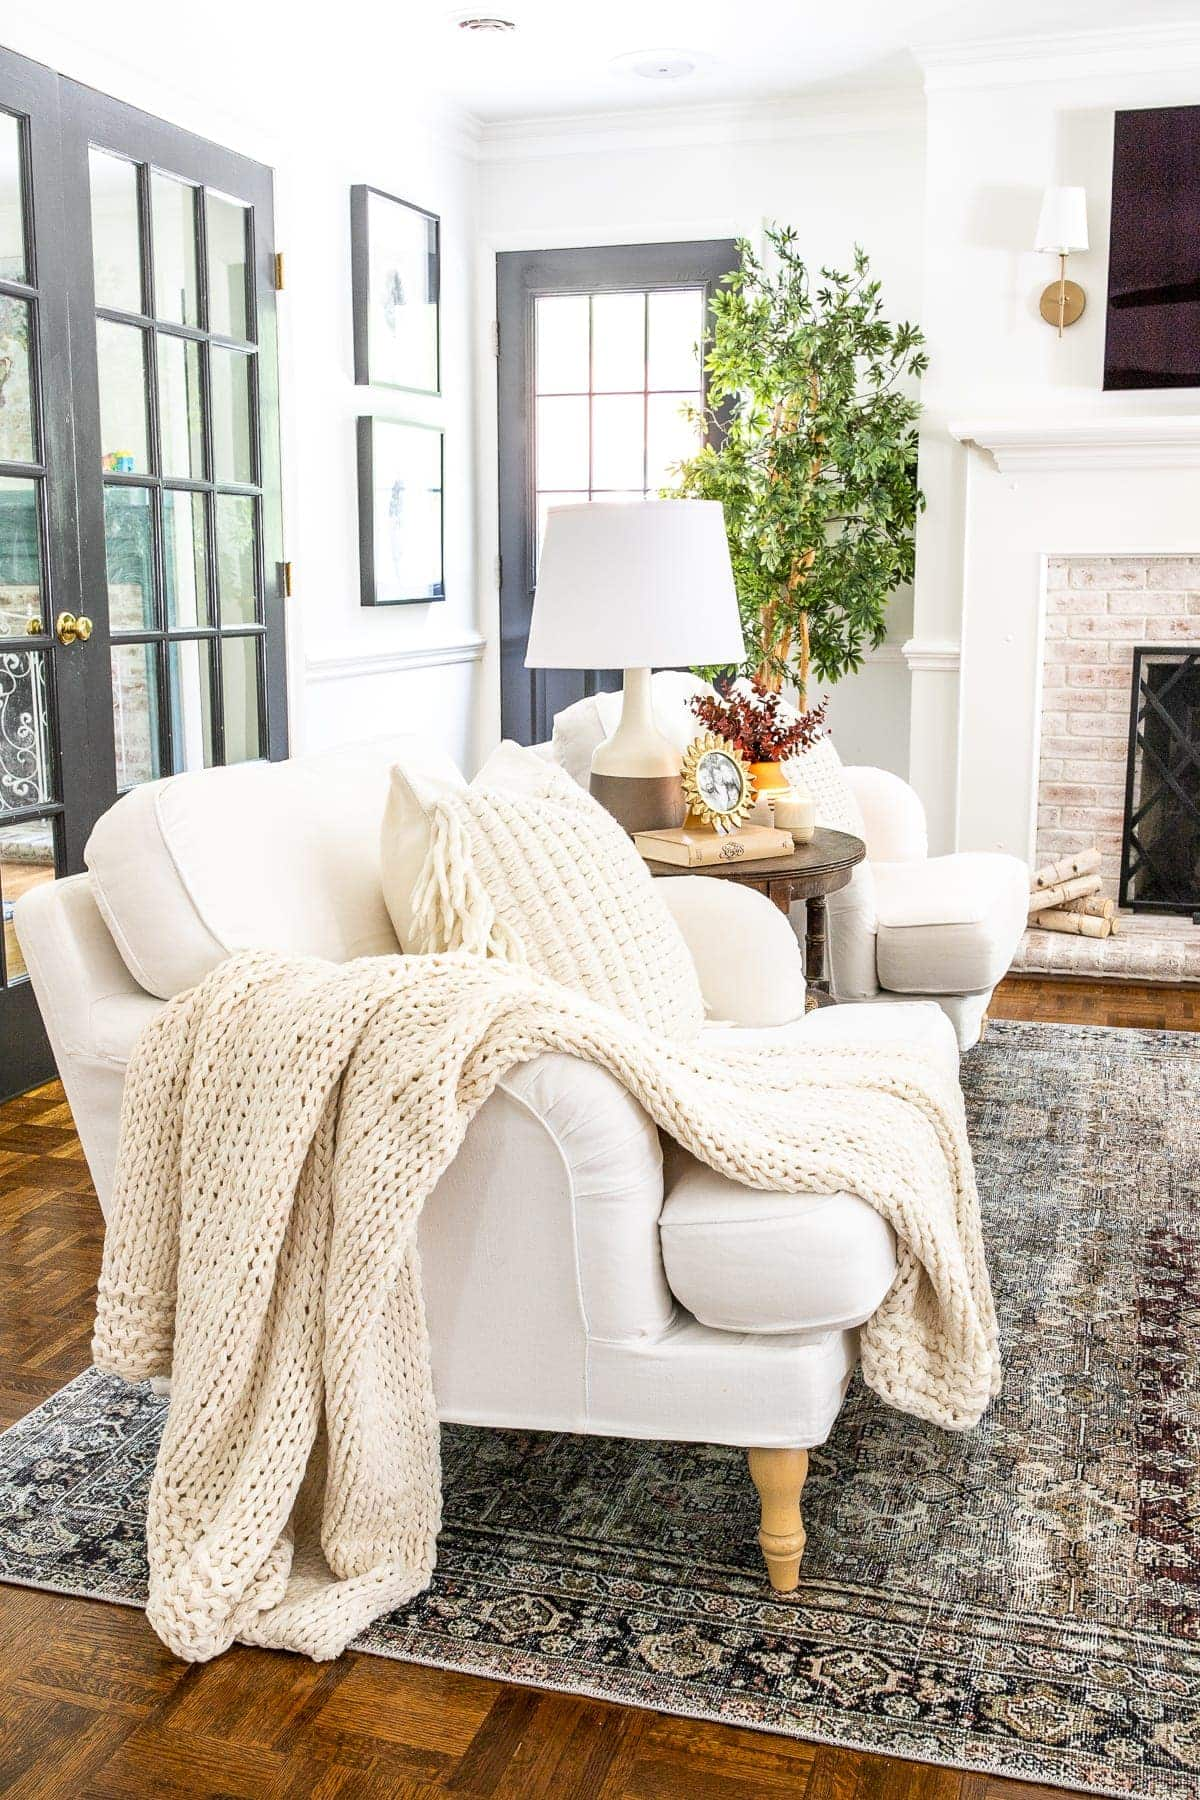 living room accent chairs with cable knit throw blanket and pillows